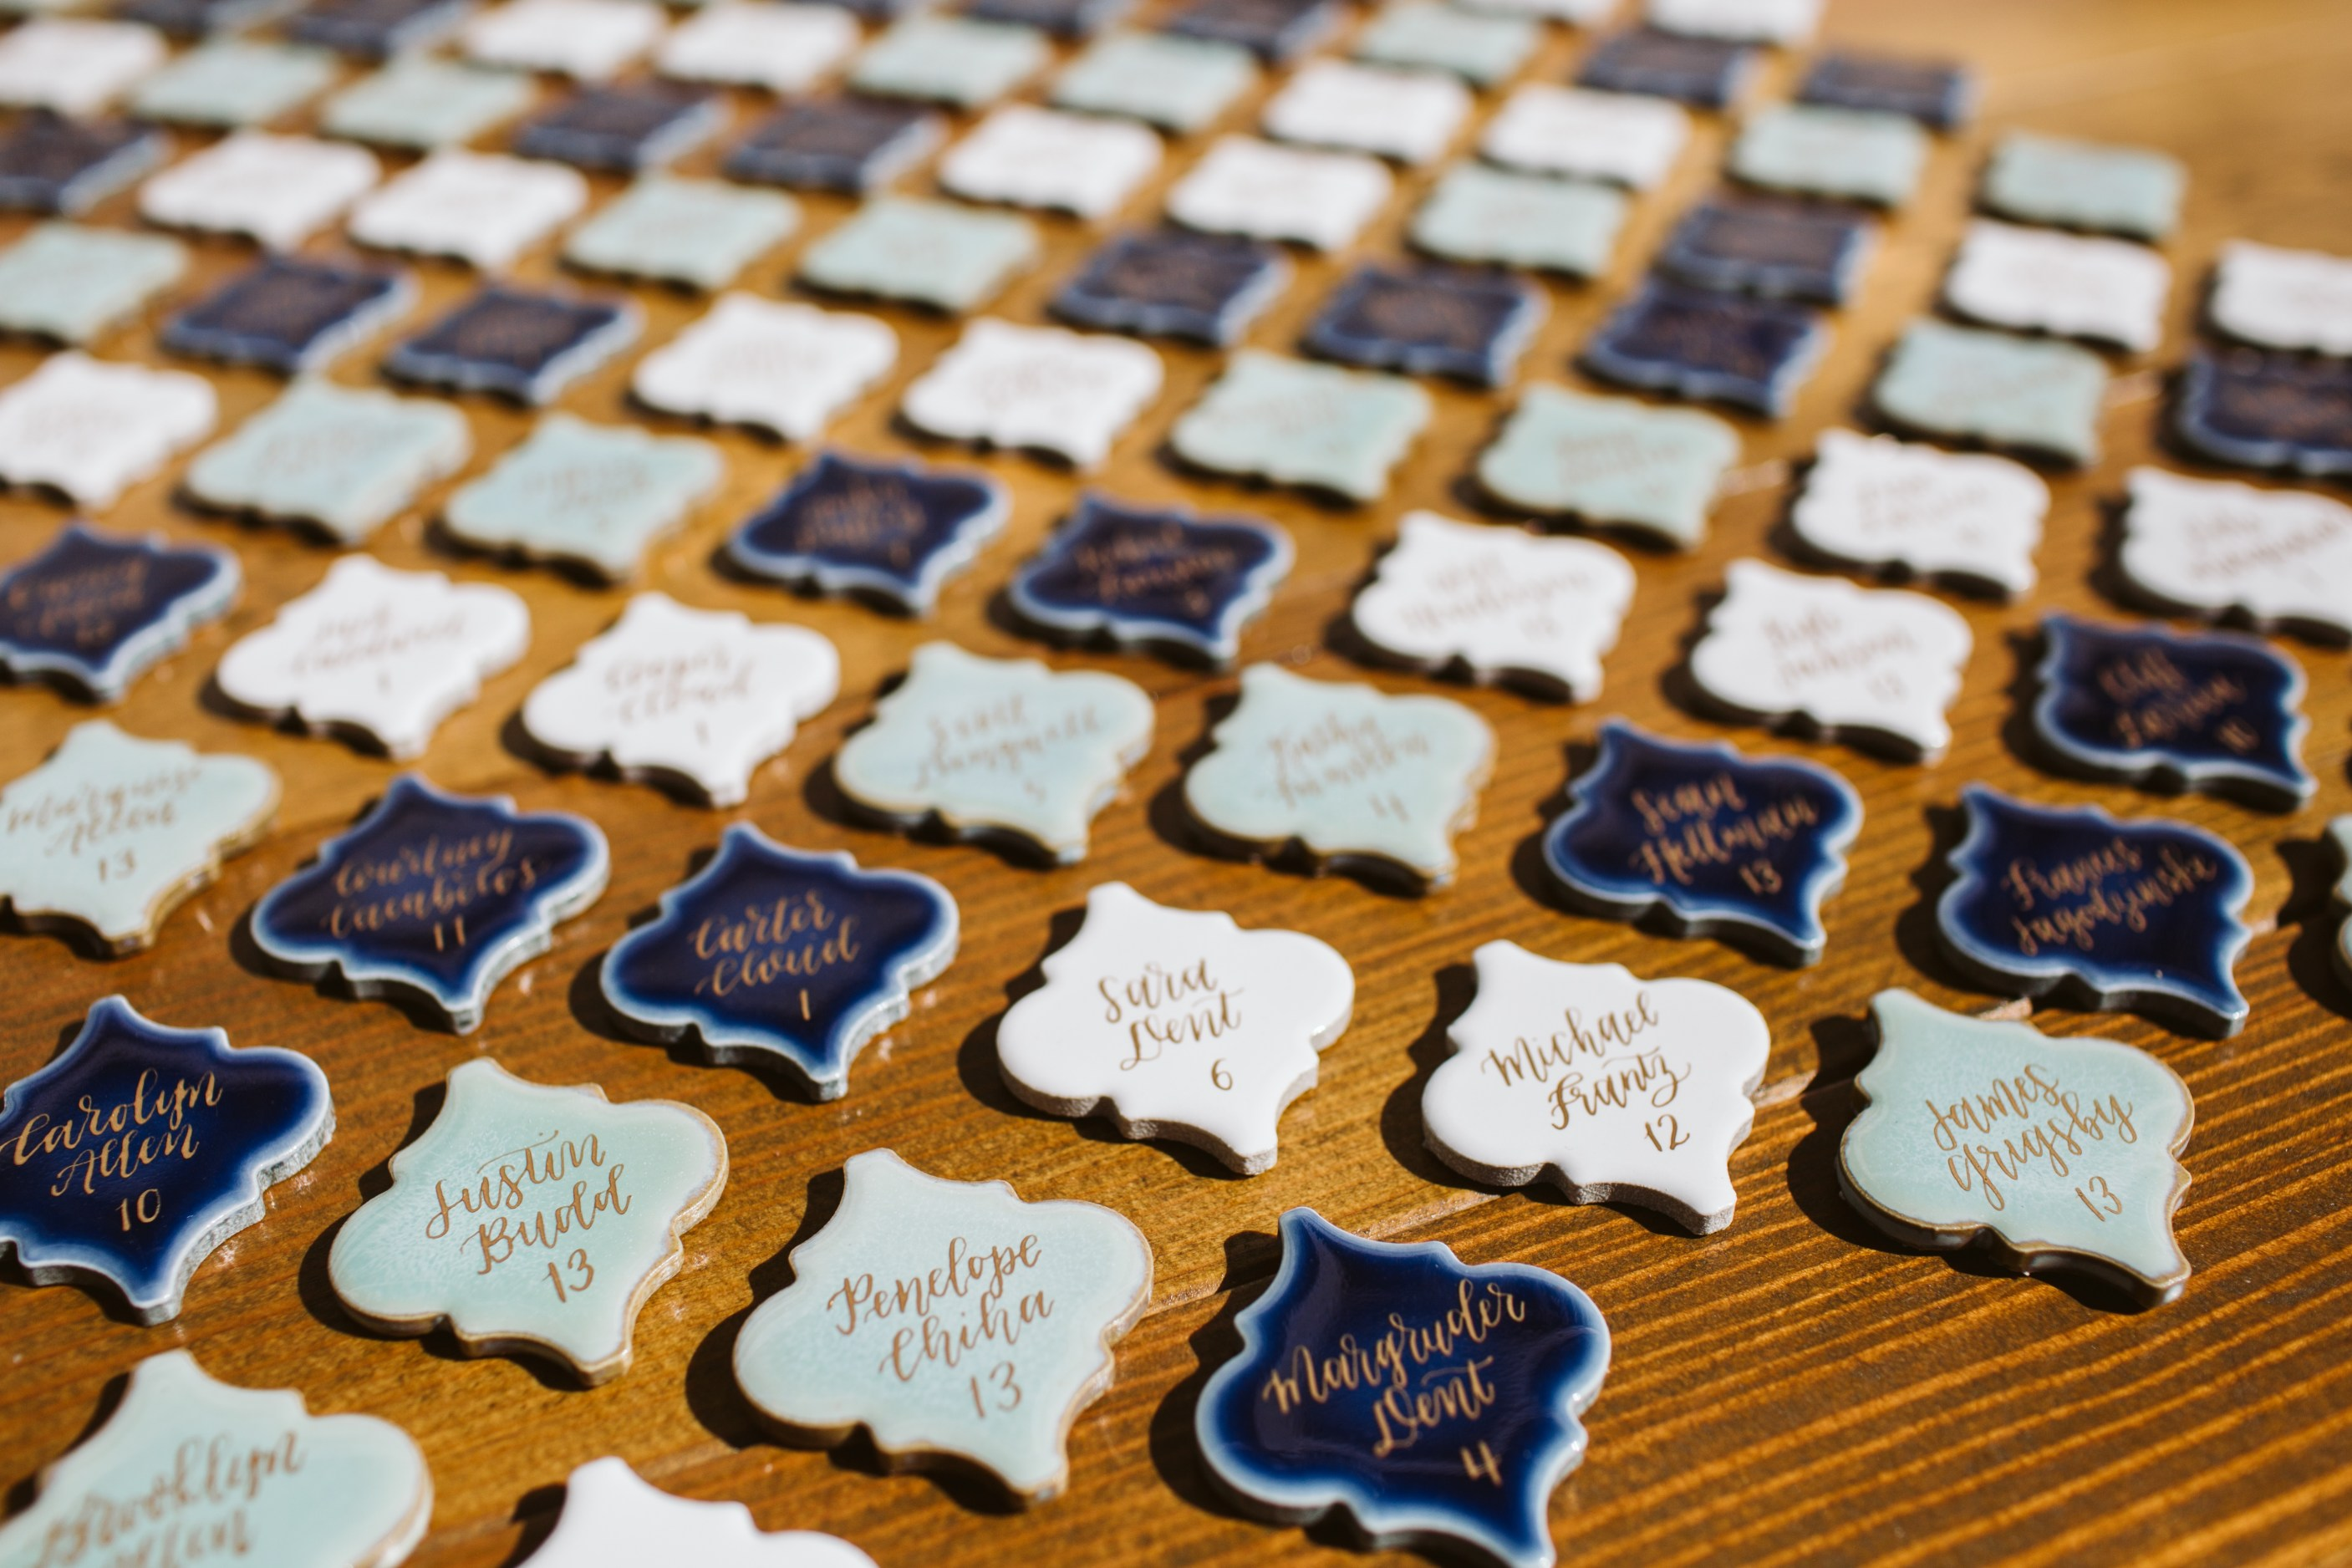 Moroccan Arabesque tiles used as place cards for your wedding reception | Tiles by Anchored Paper Co. | Sara Parsons Photography | Perfectly Posh Events www.perfectlyposhevents.com